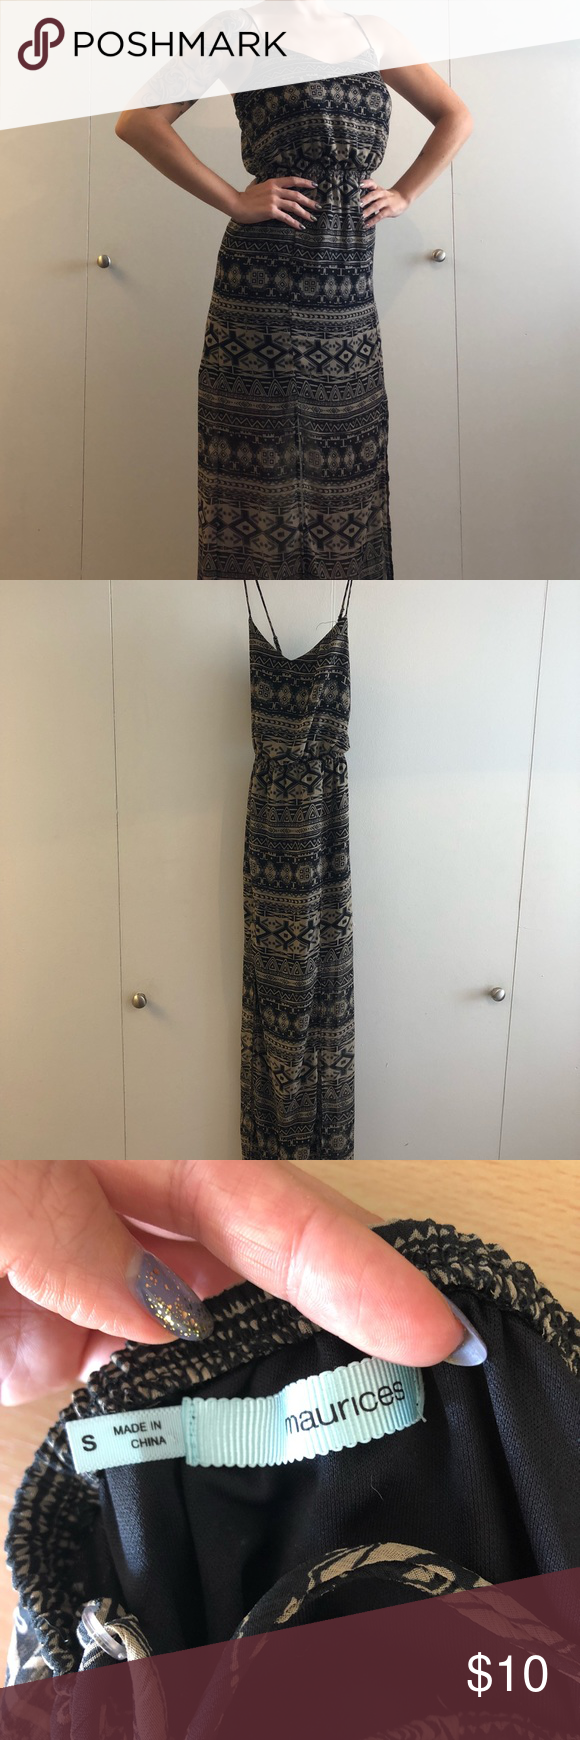 1bef43478a1d Maurice s Maxi Tribal Print Dress Good Condition. This tribal maxi dress  has a crisscross back